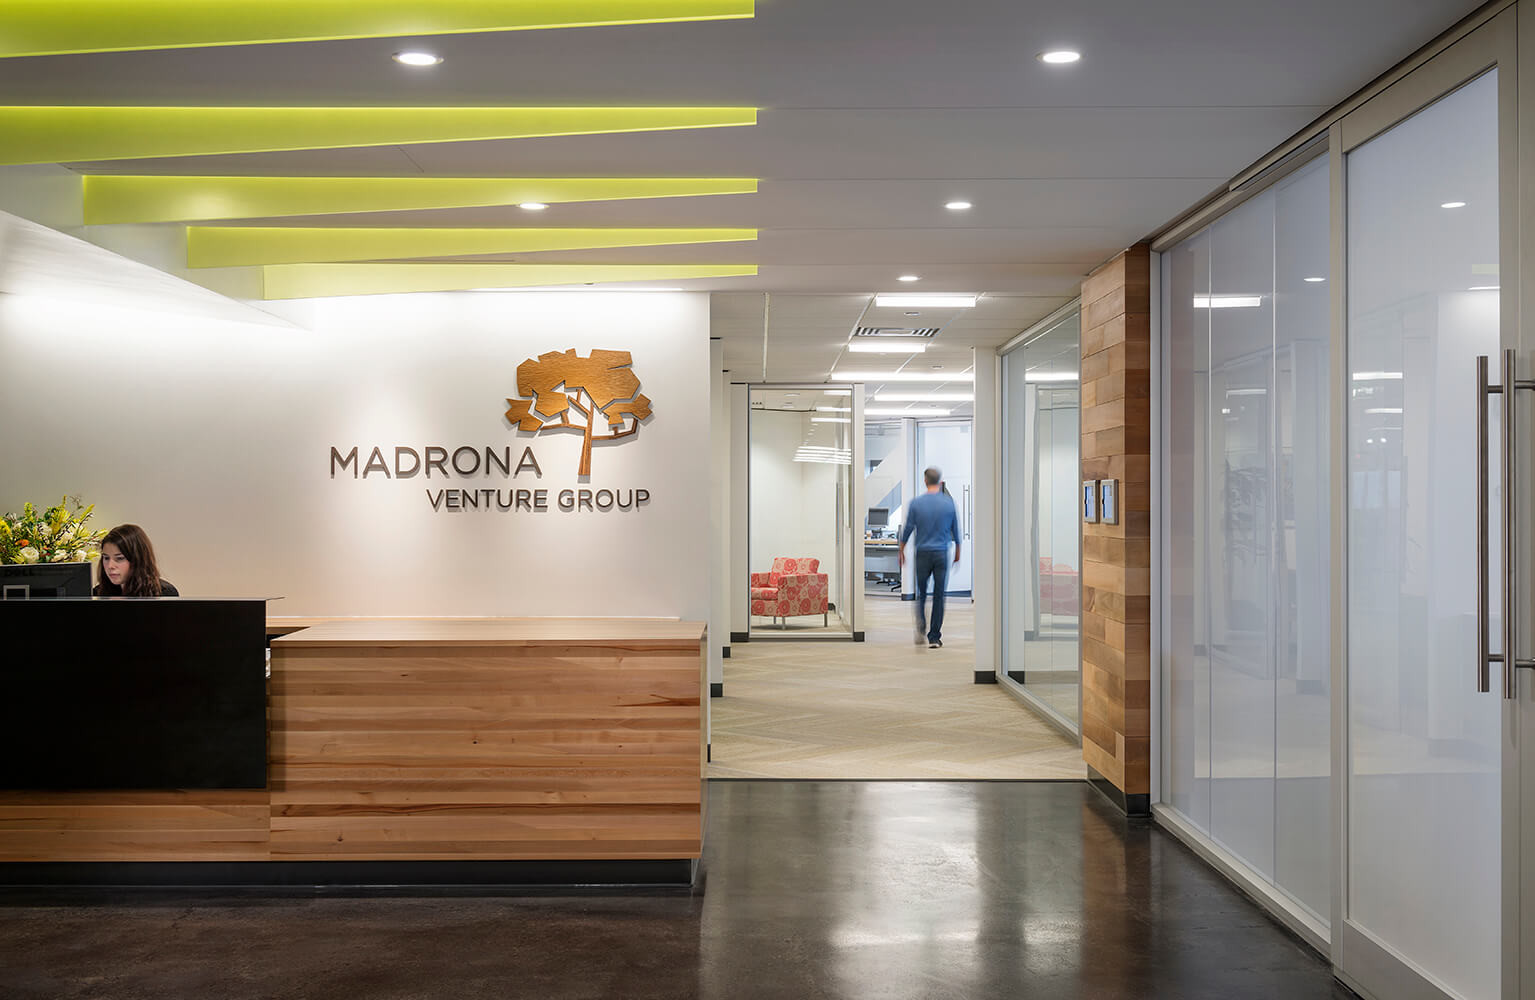 Madrona Venture Group image